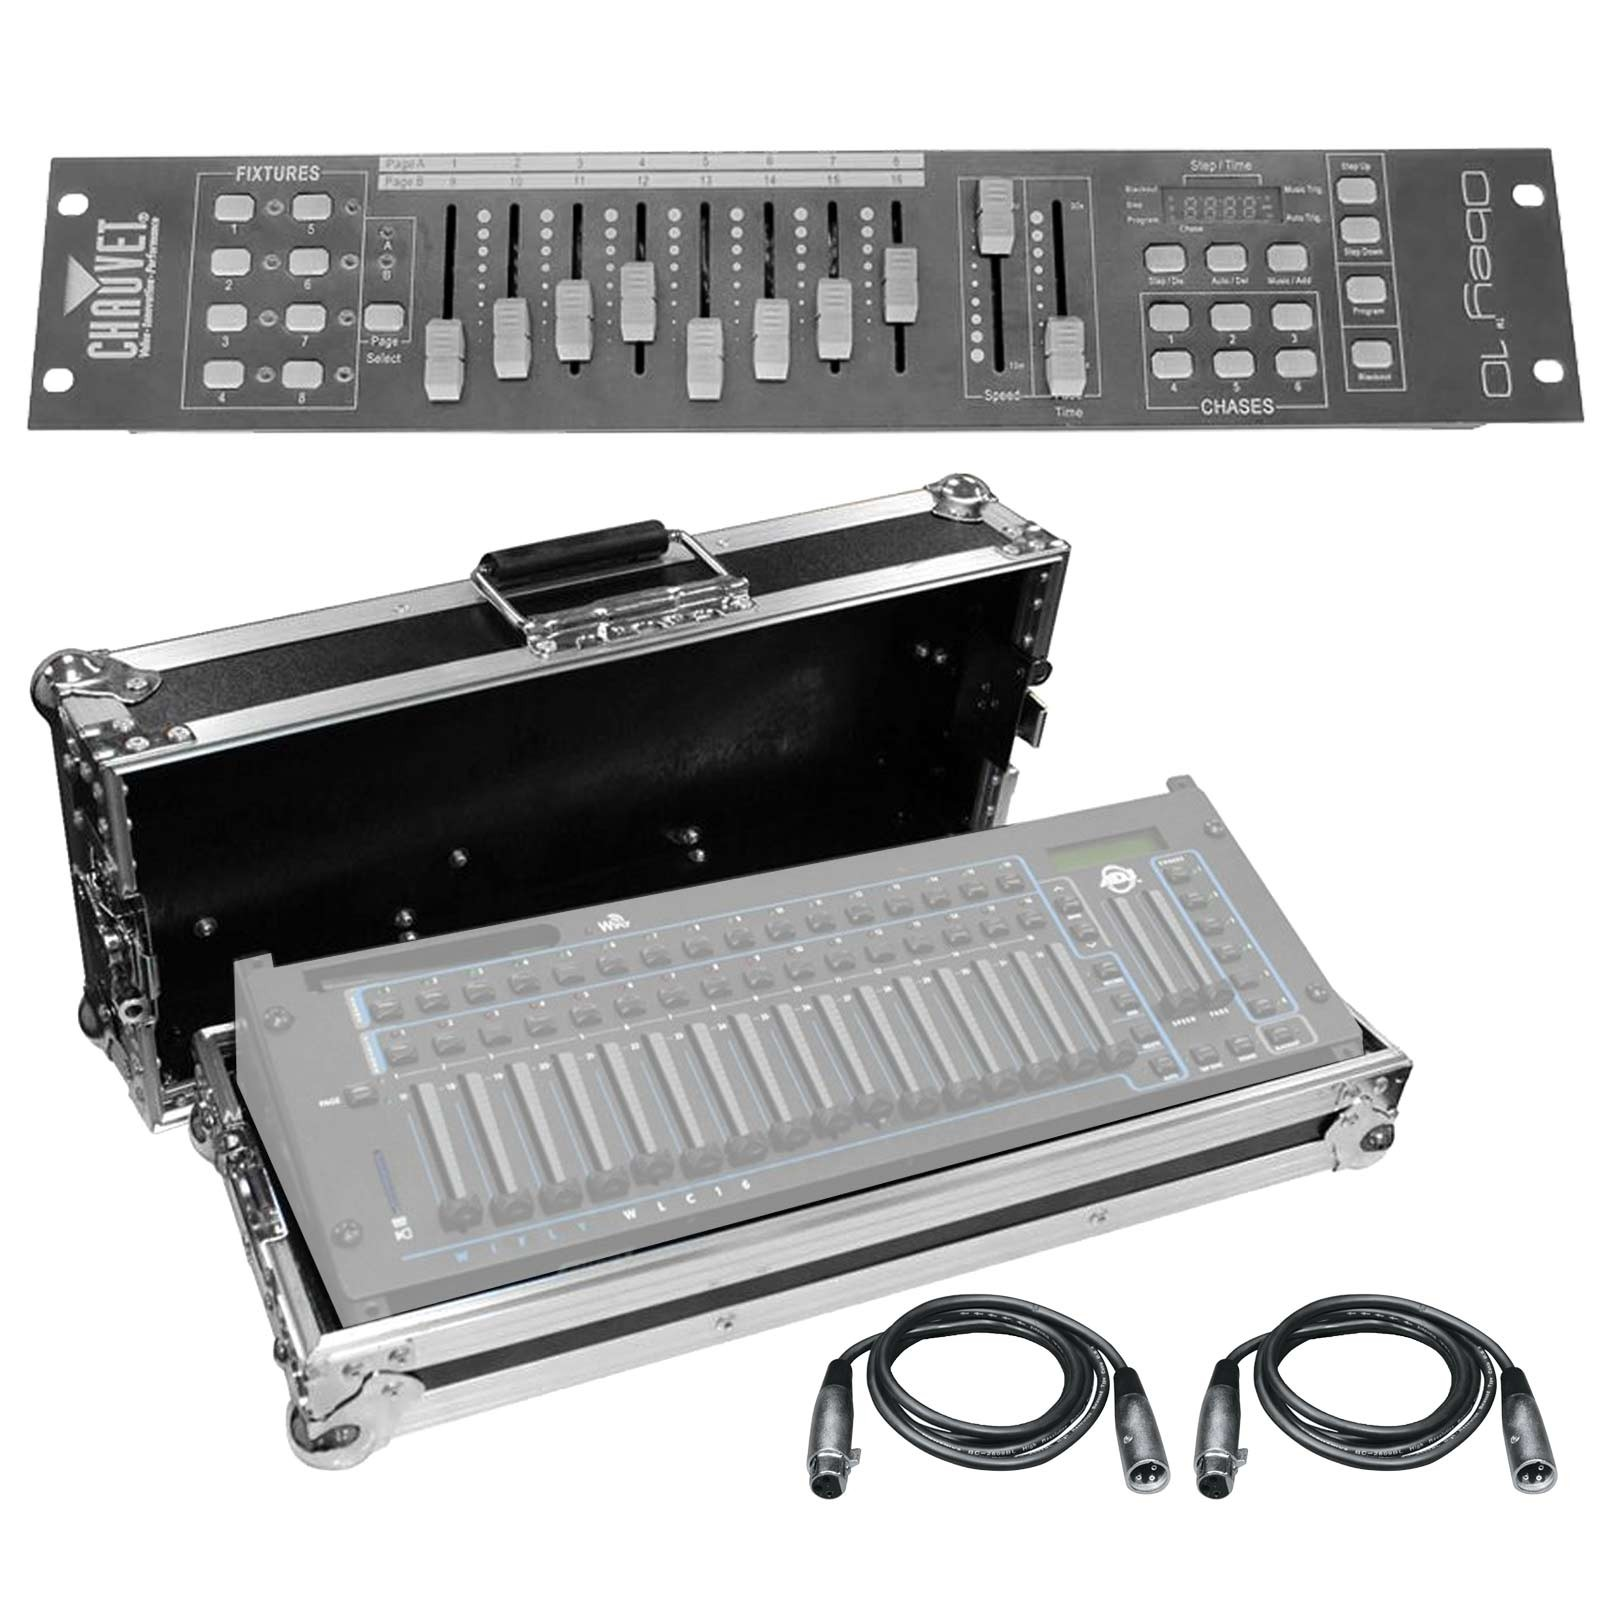 chauvet obey 10 dmx lighting controller with case avmaxx